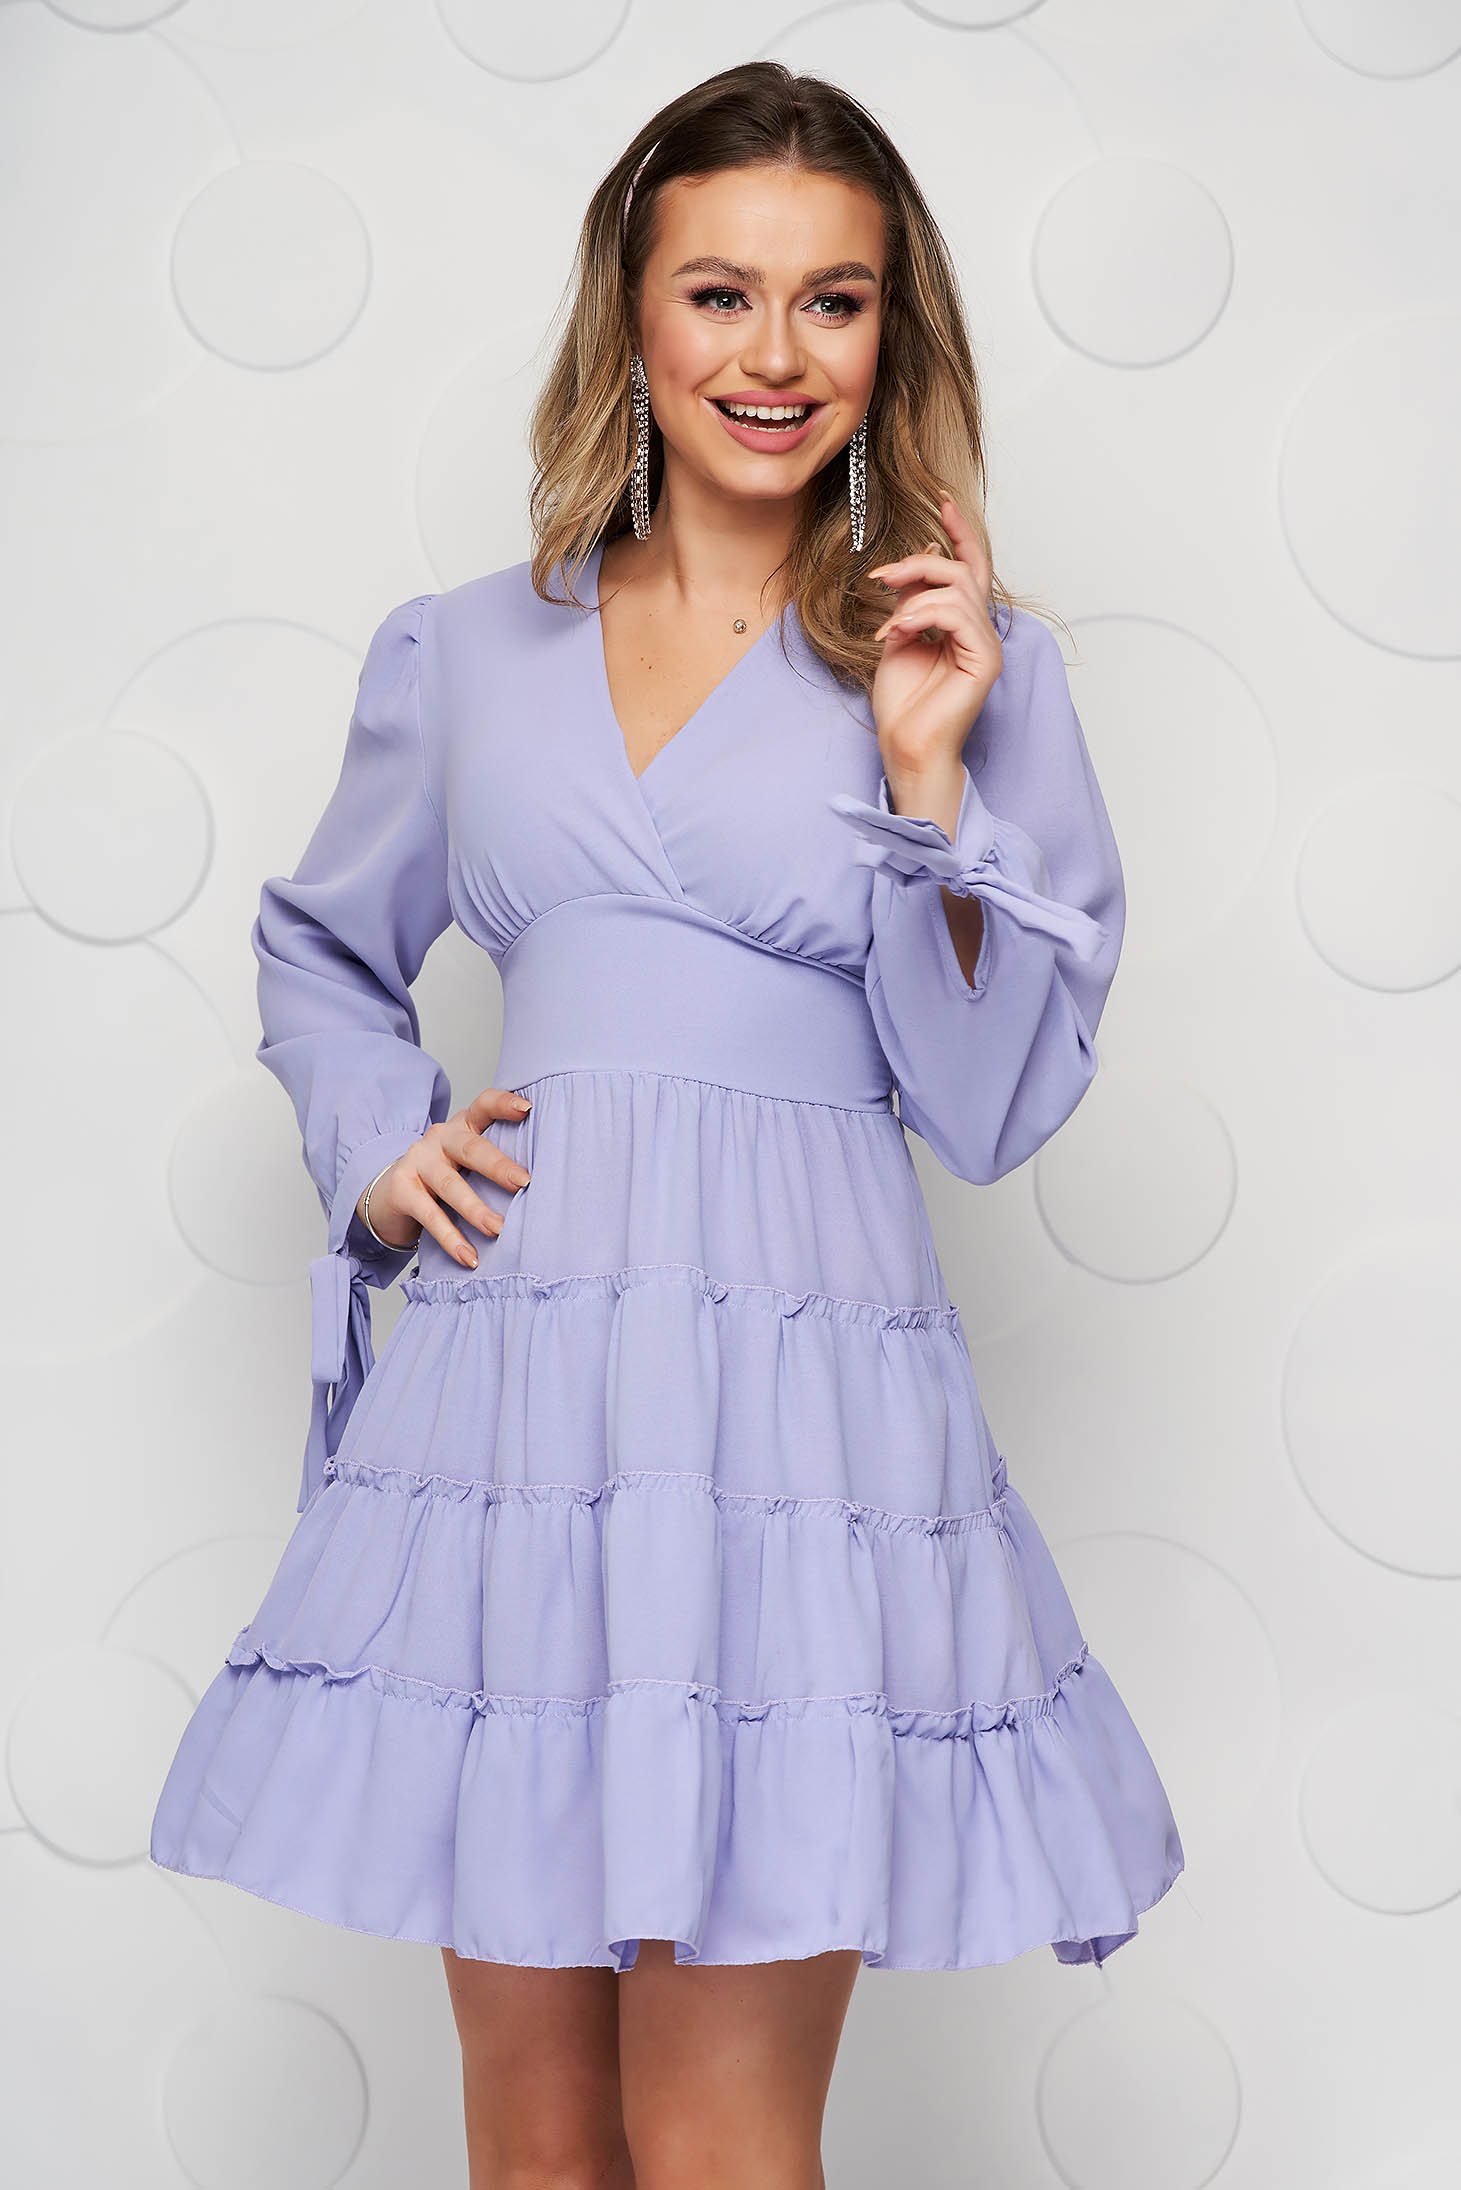 Lila dress with ruffle details cloche wrap over front